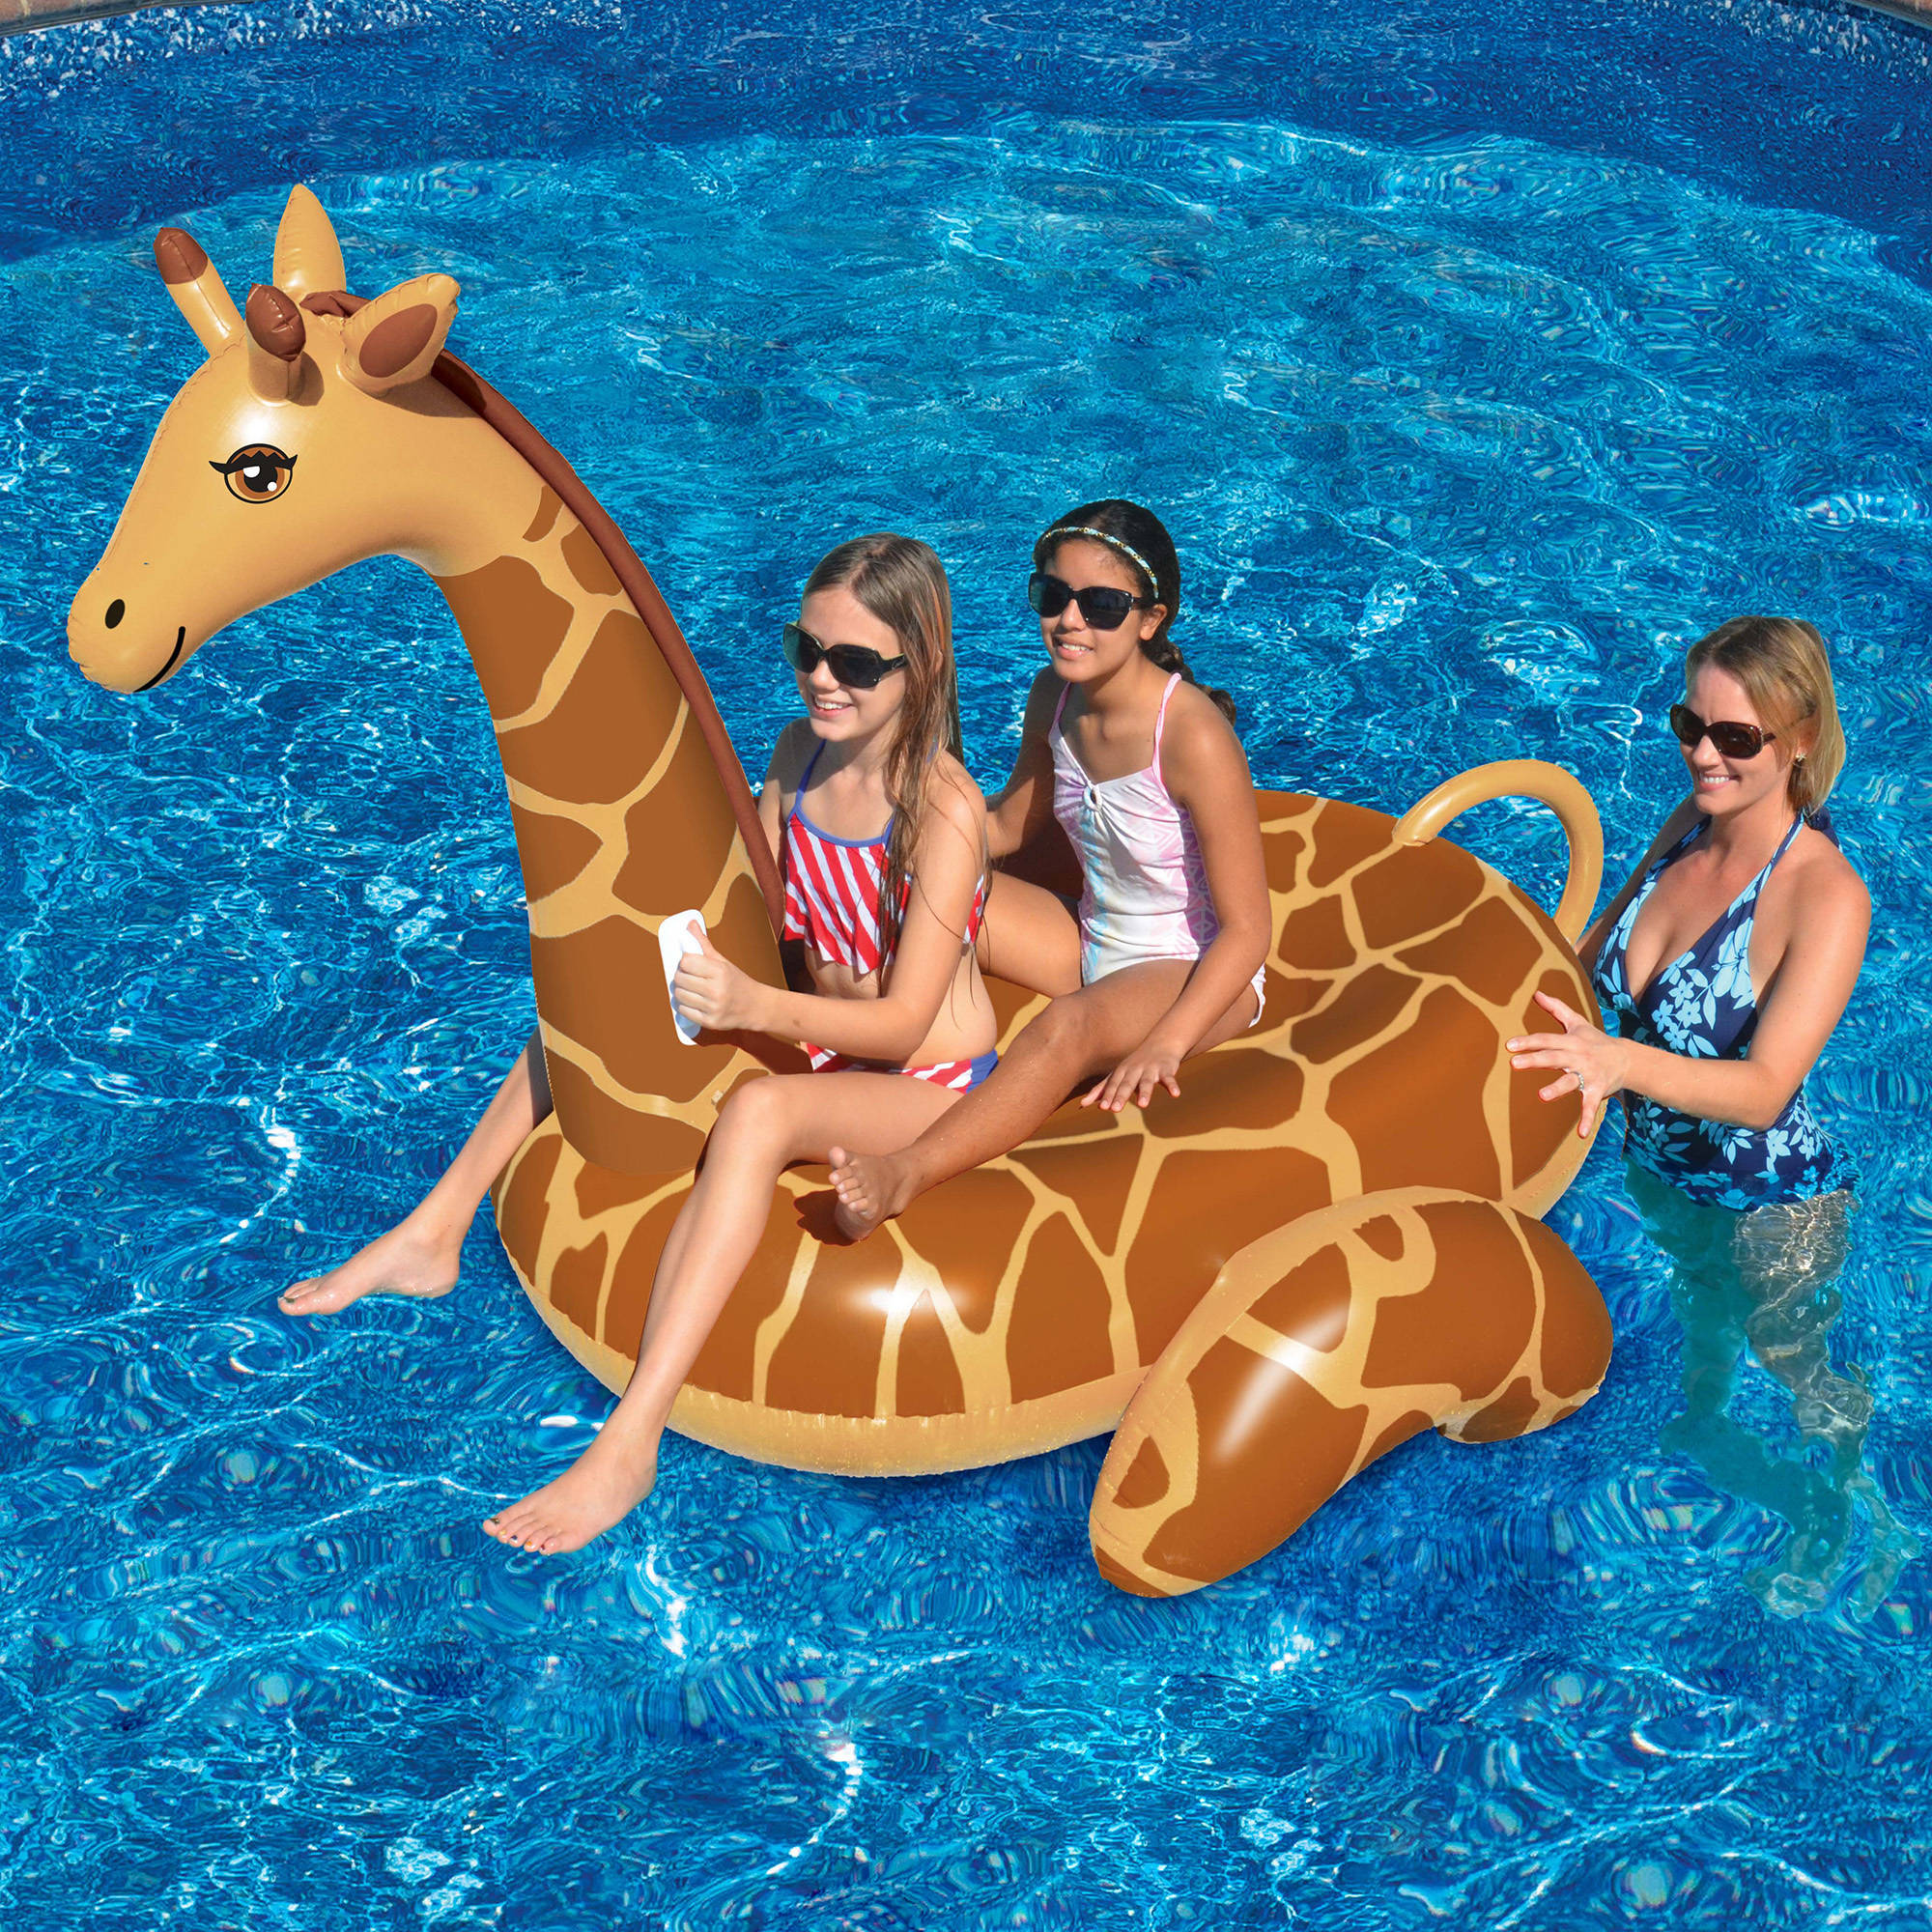 Giant Giraffe 96-in Inflatable Ride-On Pool Toy by INTERNATIONAL LEISURE PRODUCTS